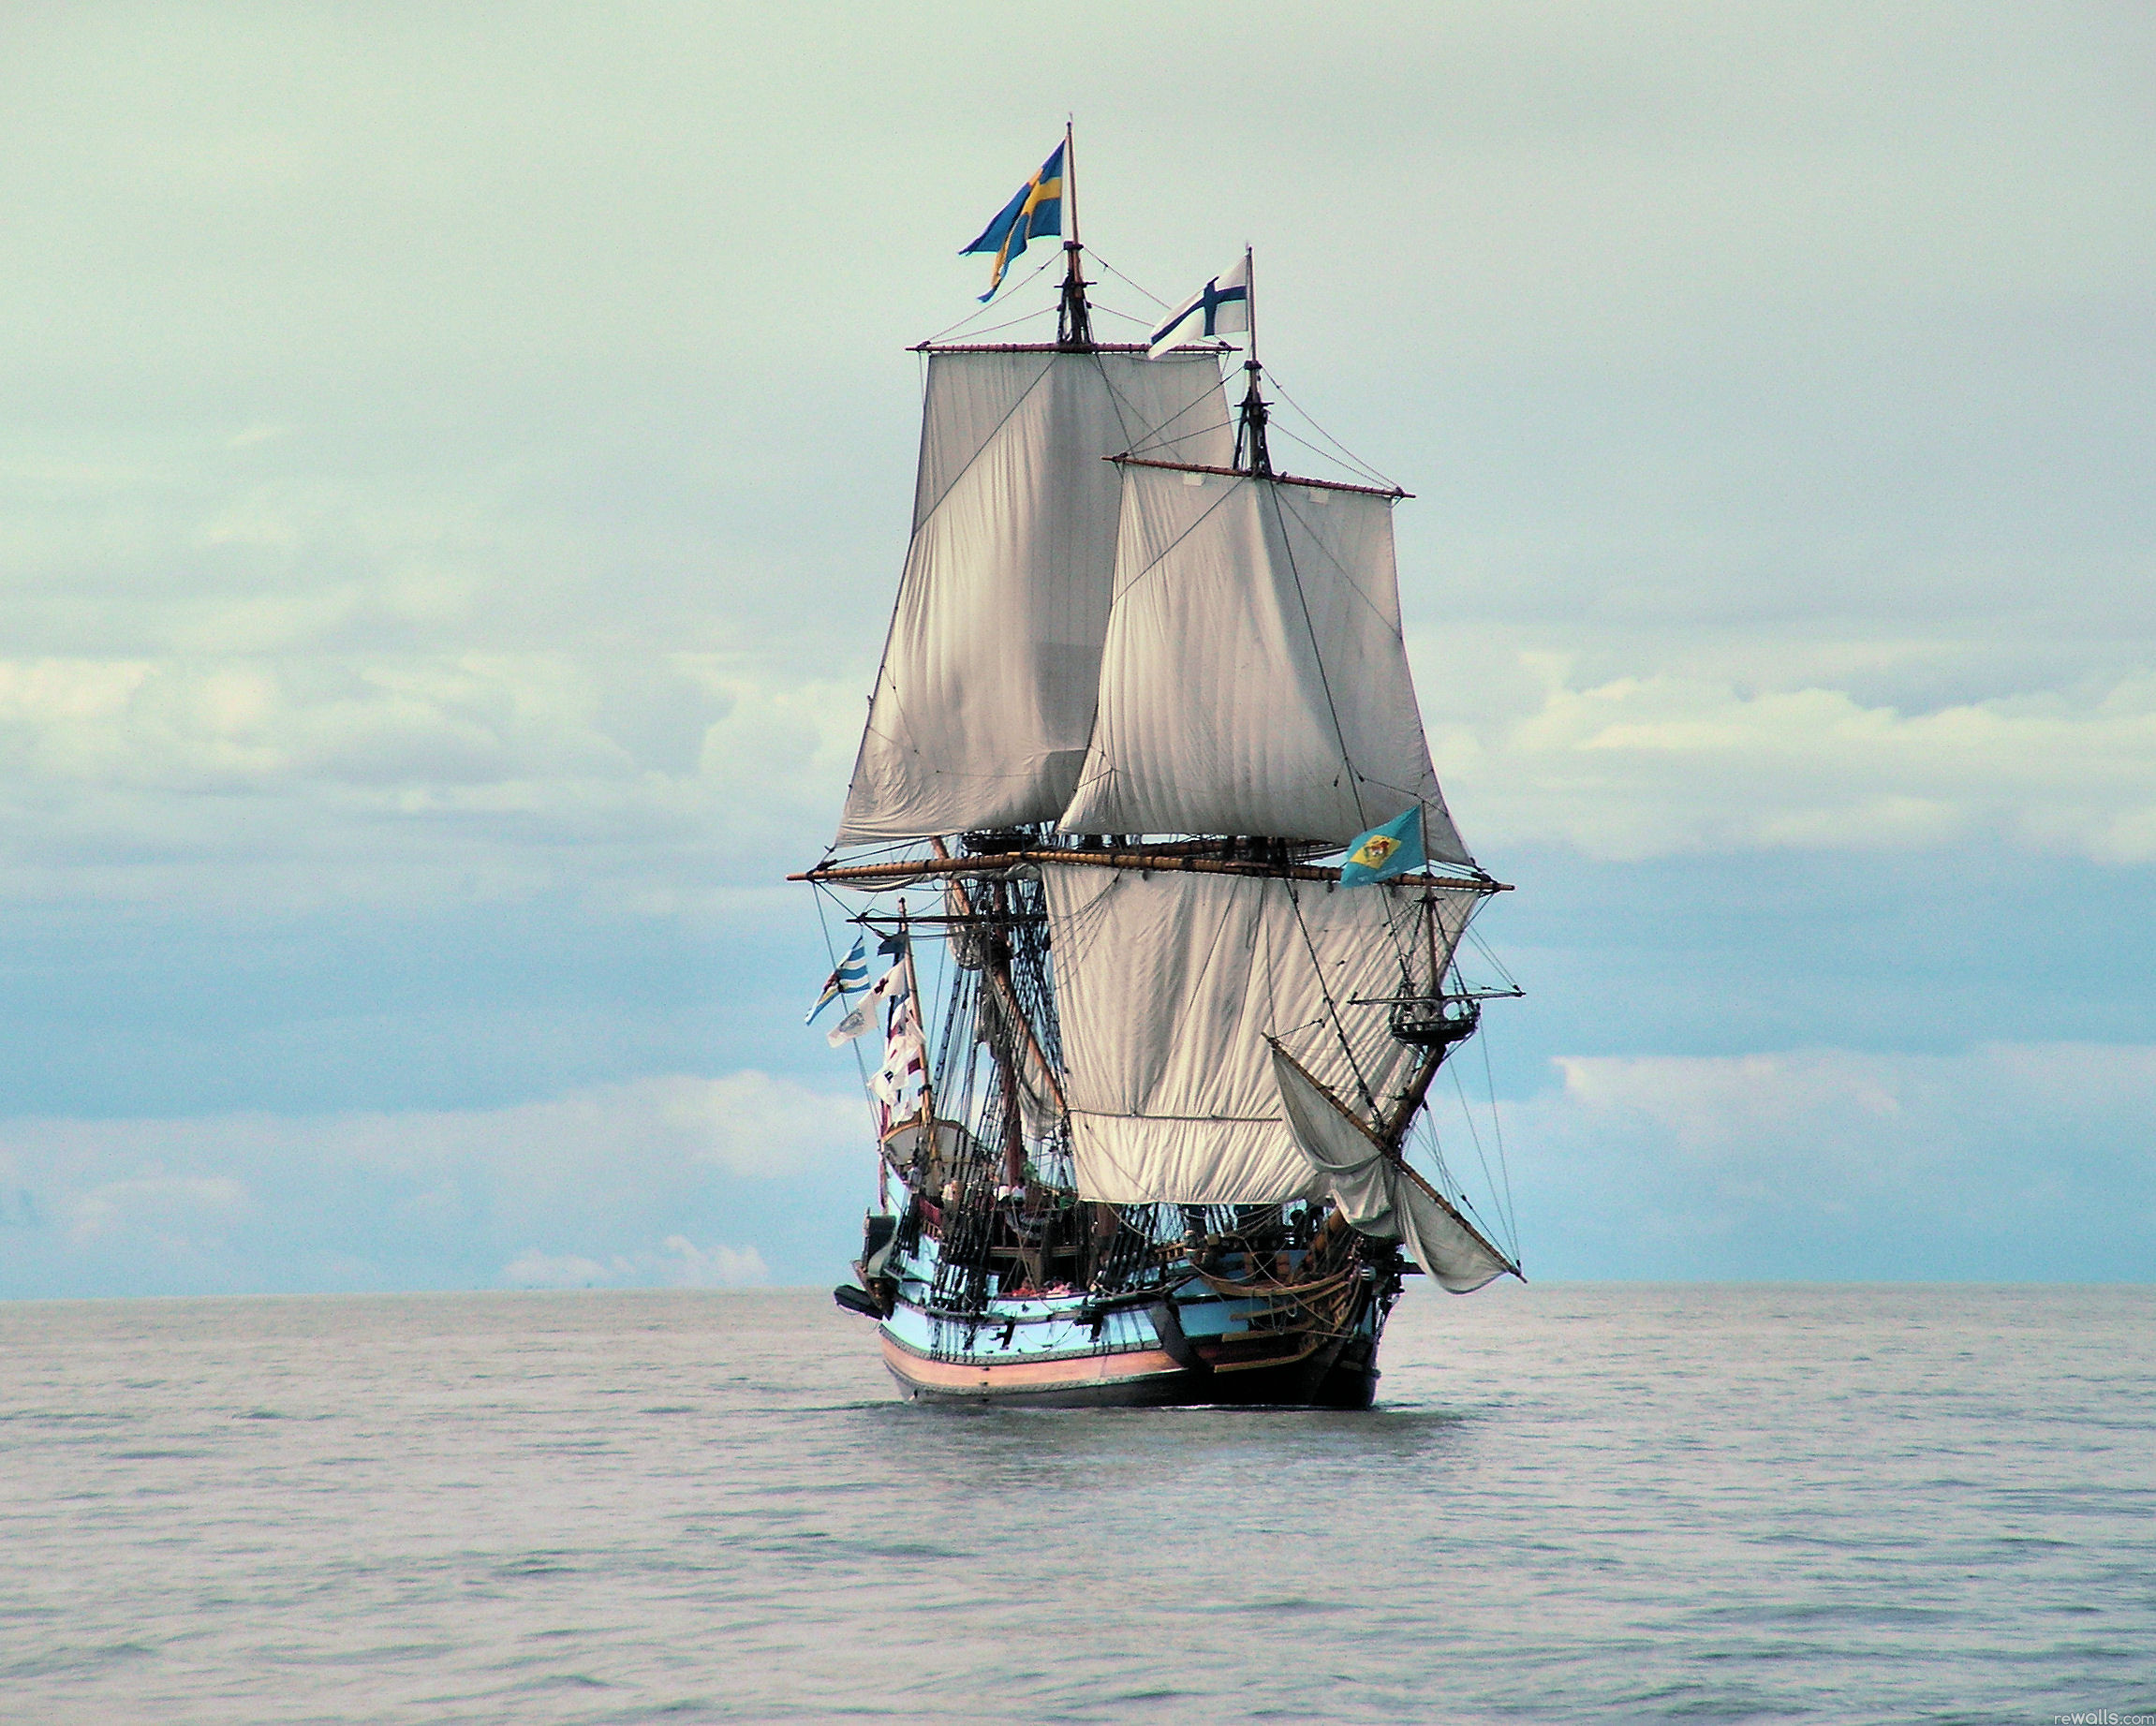 Res: 2302x1843, 1920x1080 Images For > Tall Ships Wallpaper